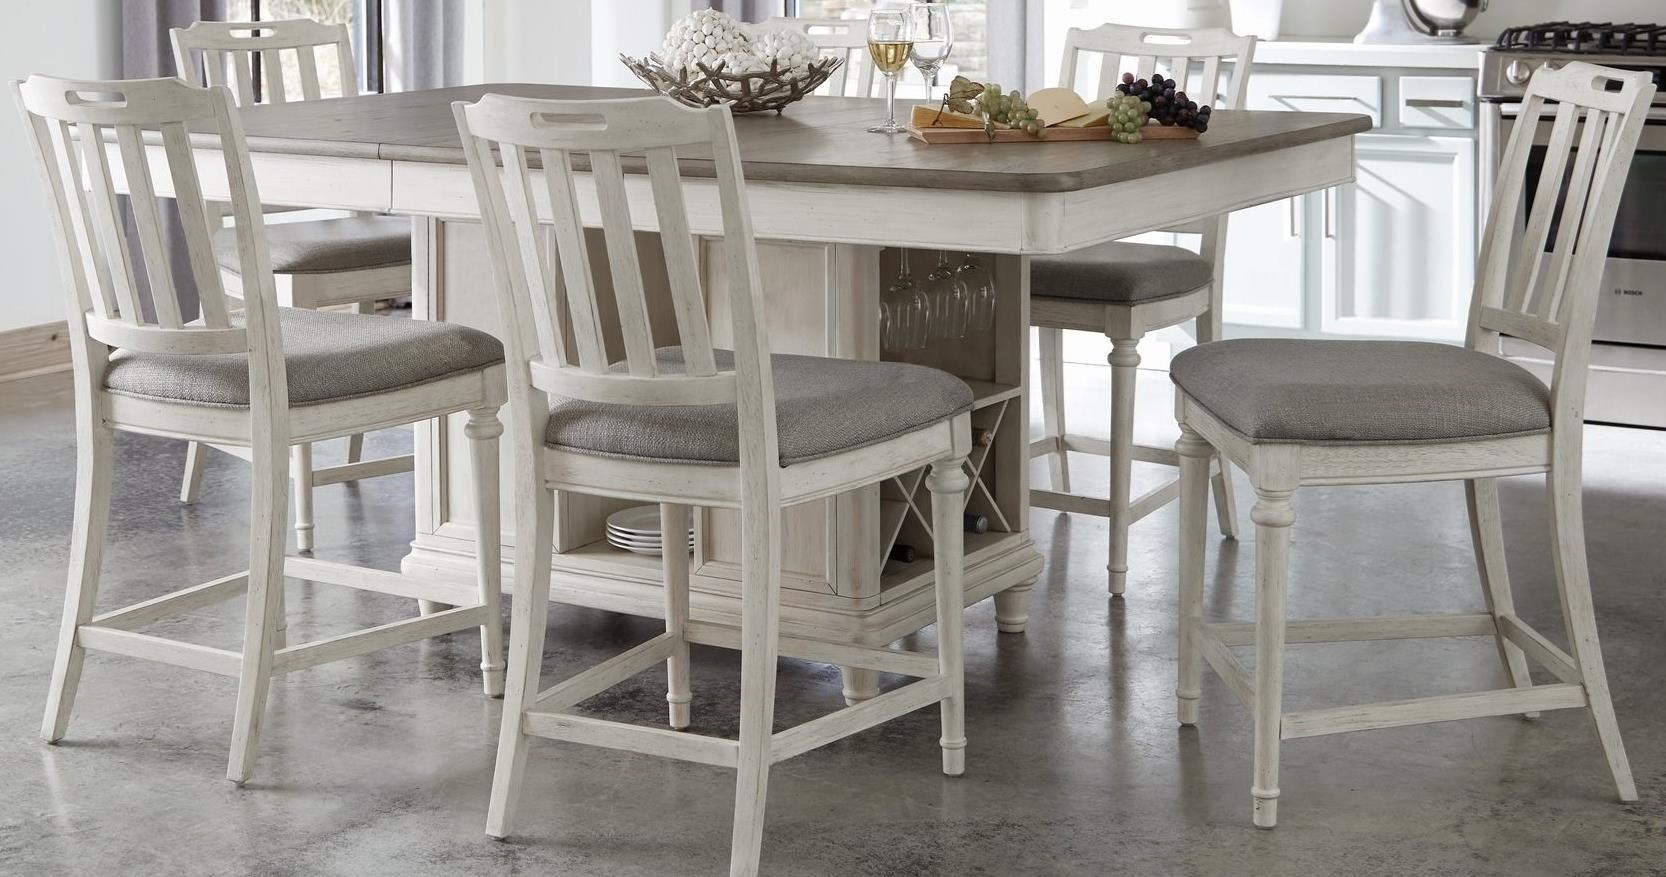 Farmhouse 7-Piece Counter Height Table and Stools Set with Wine Bottle Storage